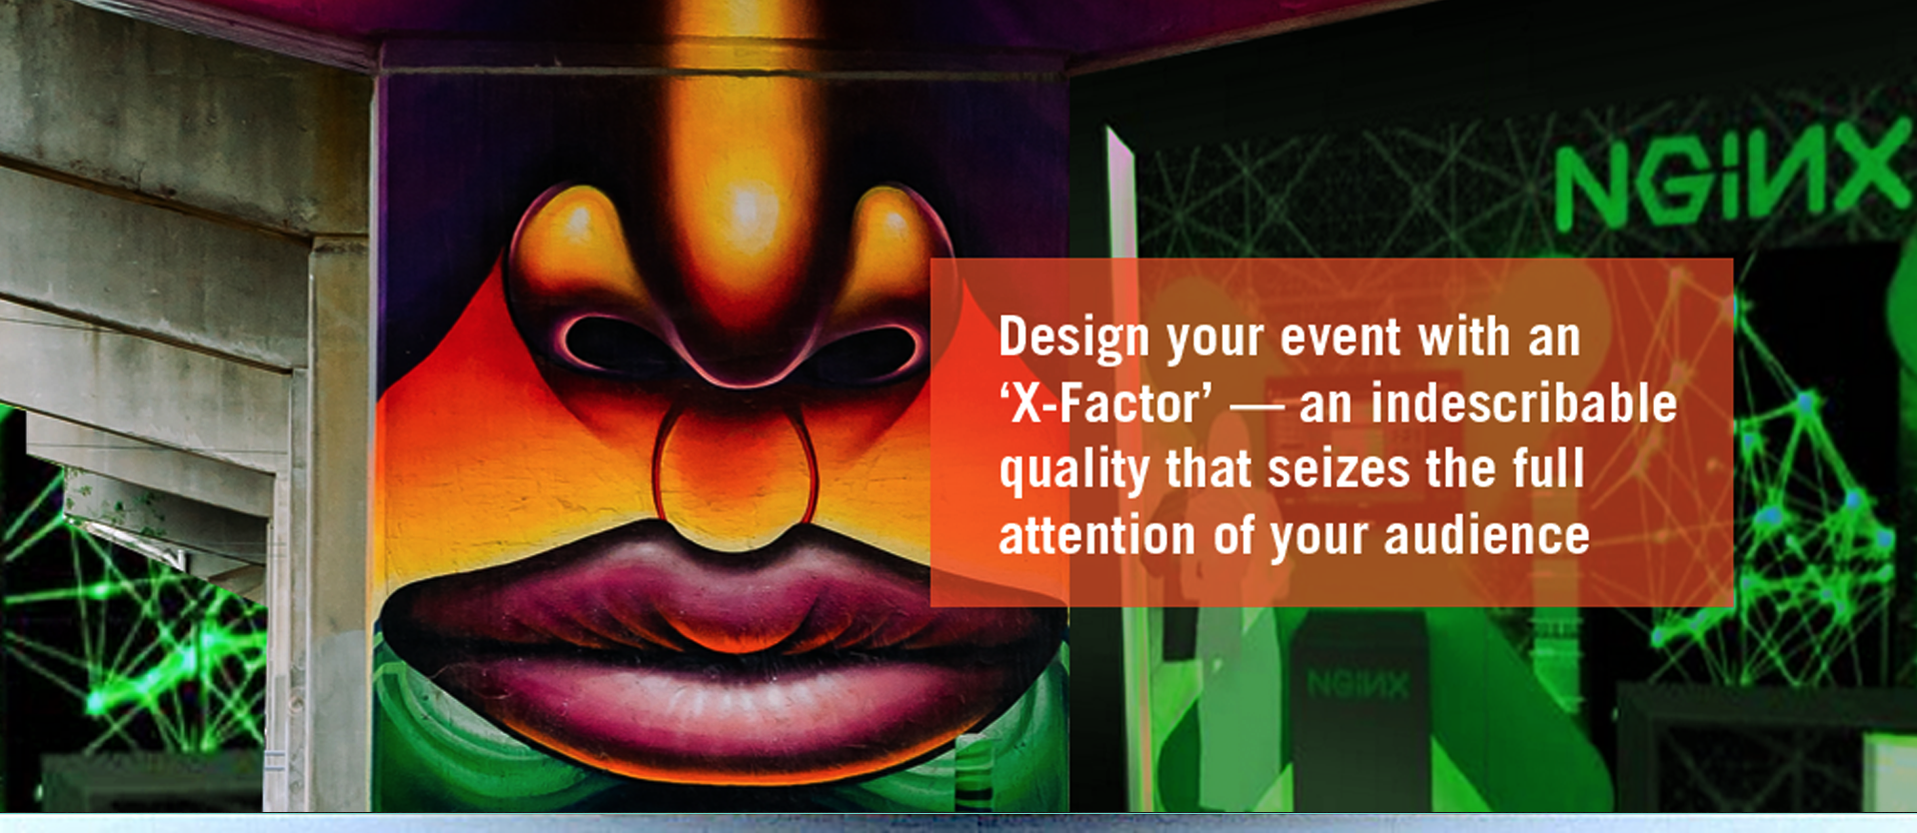 design your event with an X factor